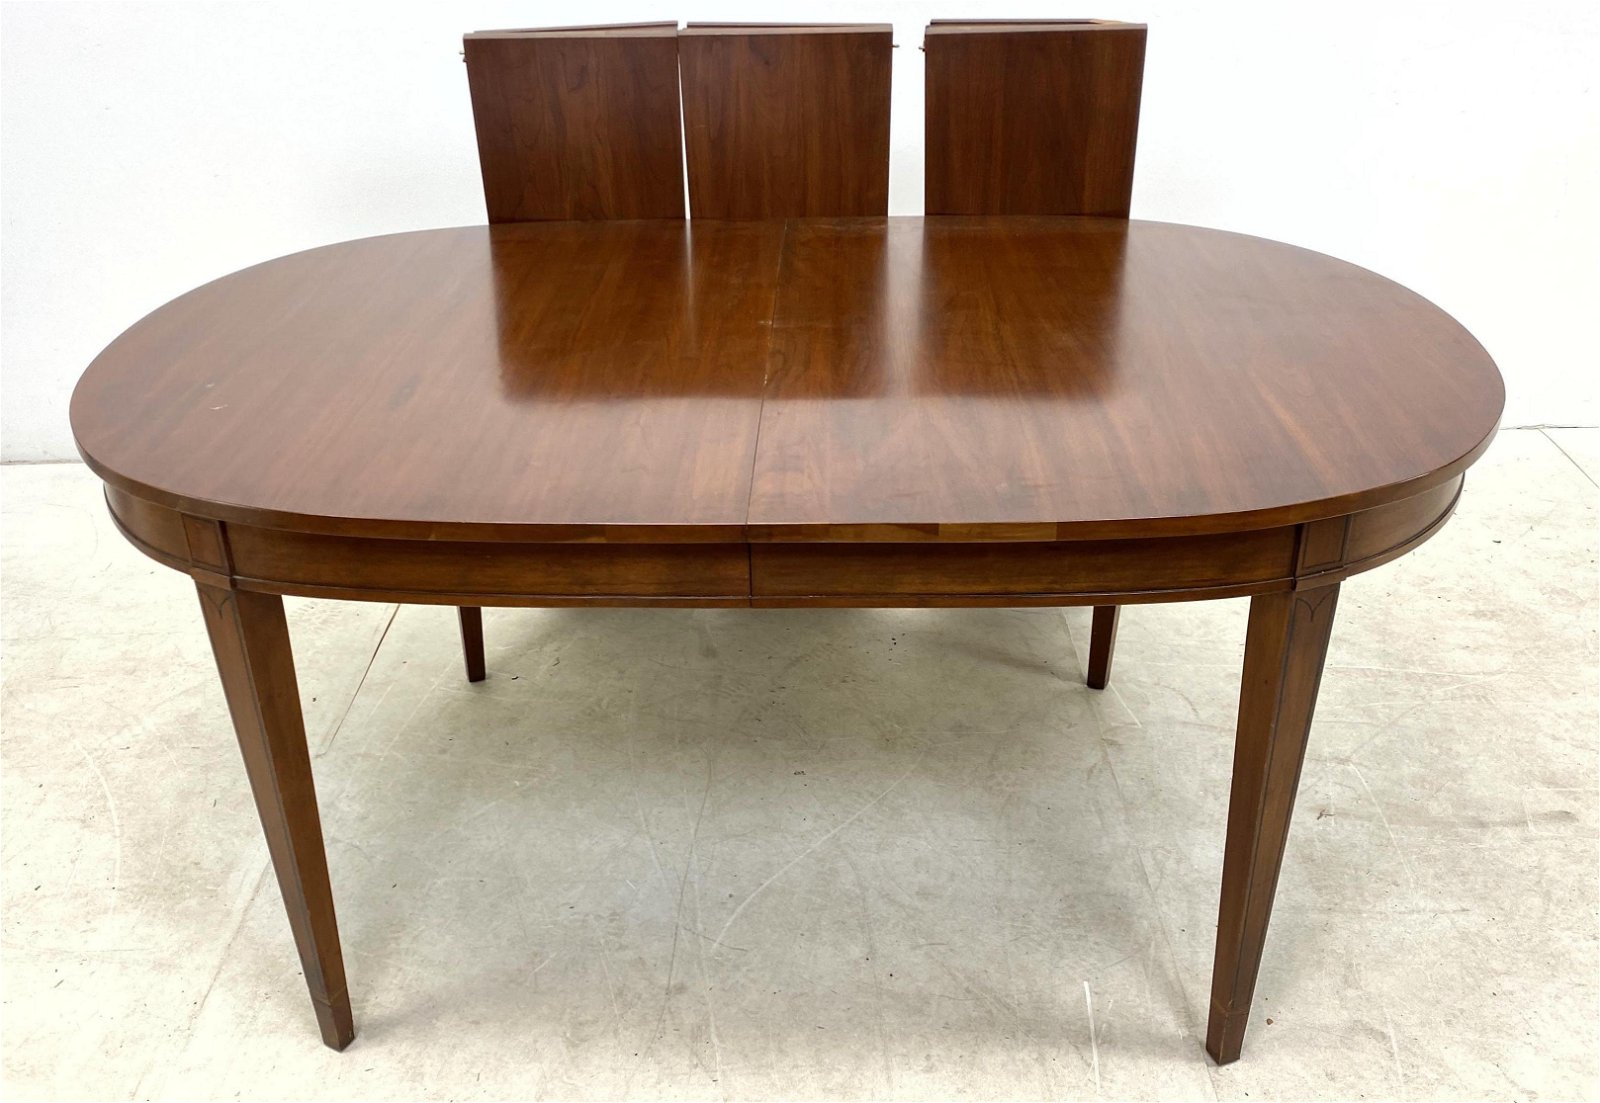 HENKEL HARRIS Cherry Oval Dining Table with Three 12 in